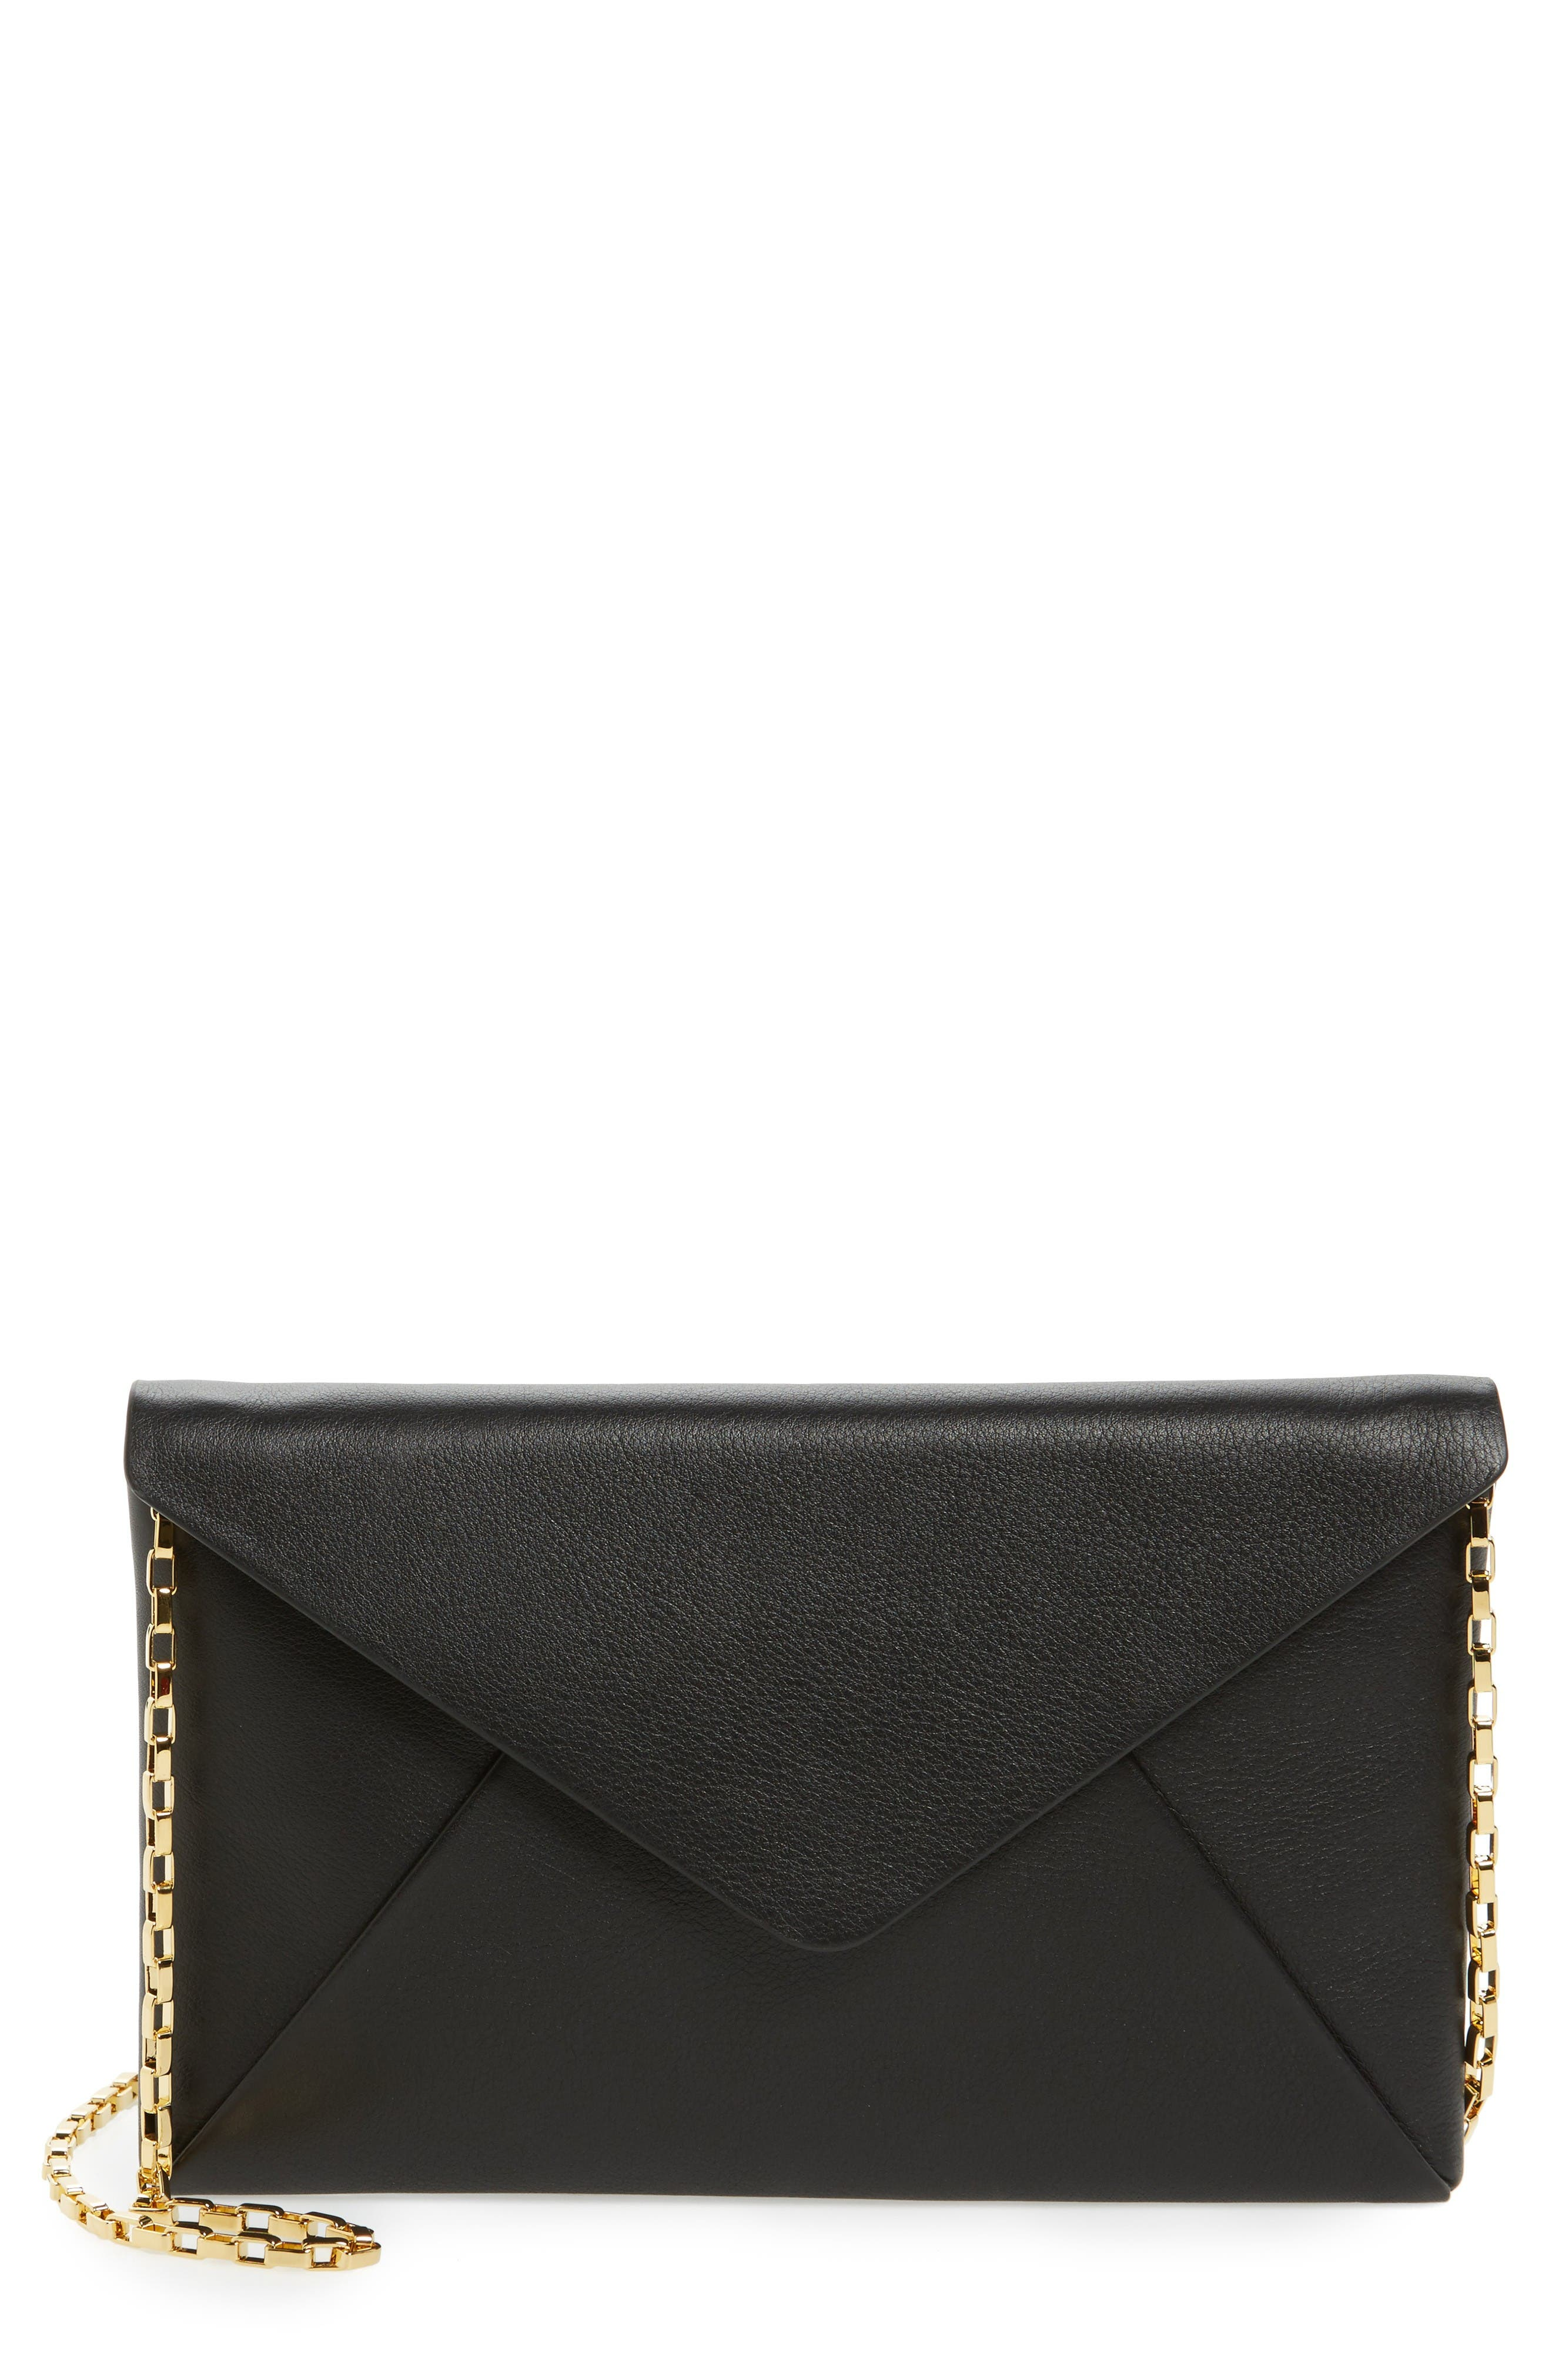 Main Image - Michael Kors Small Calfskin Leather Envelope Clutch